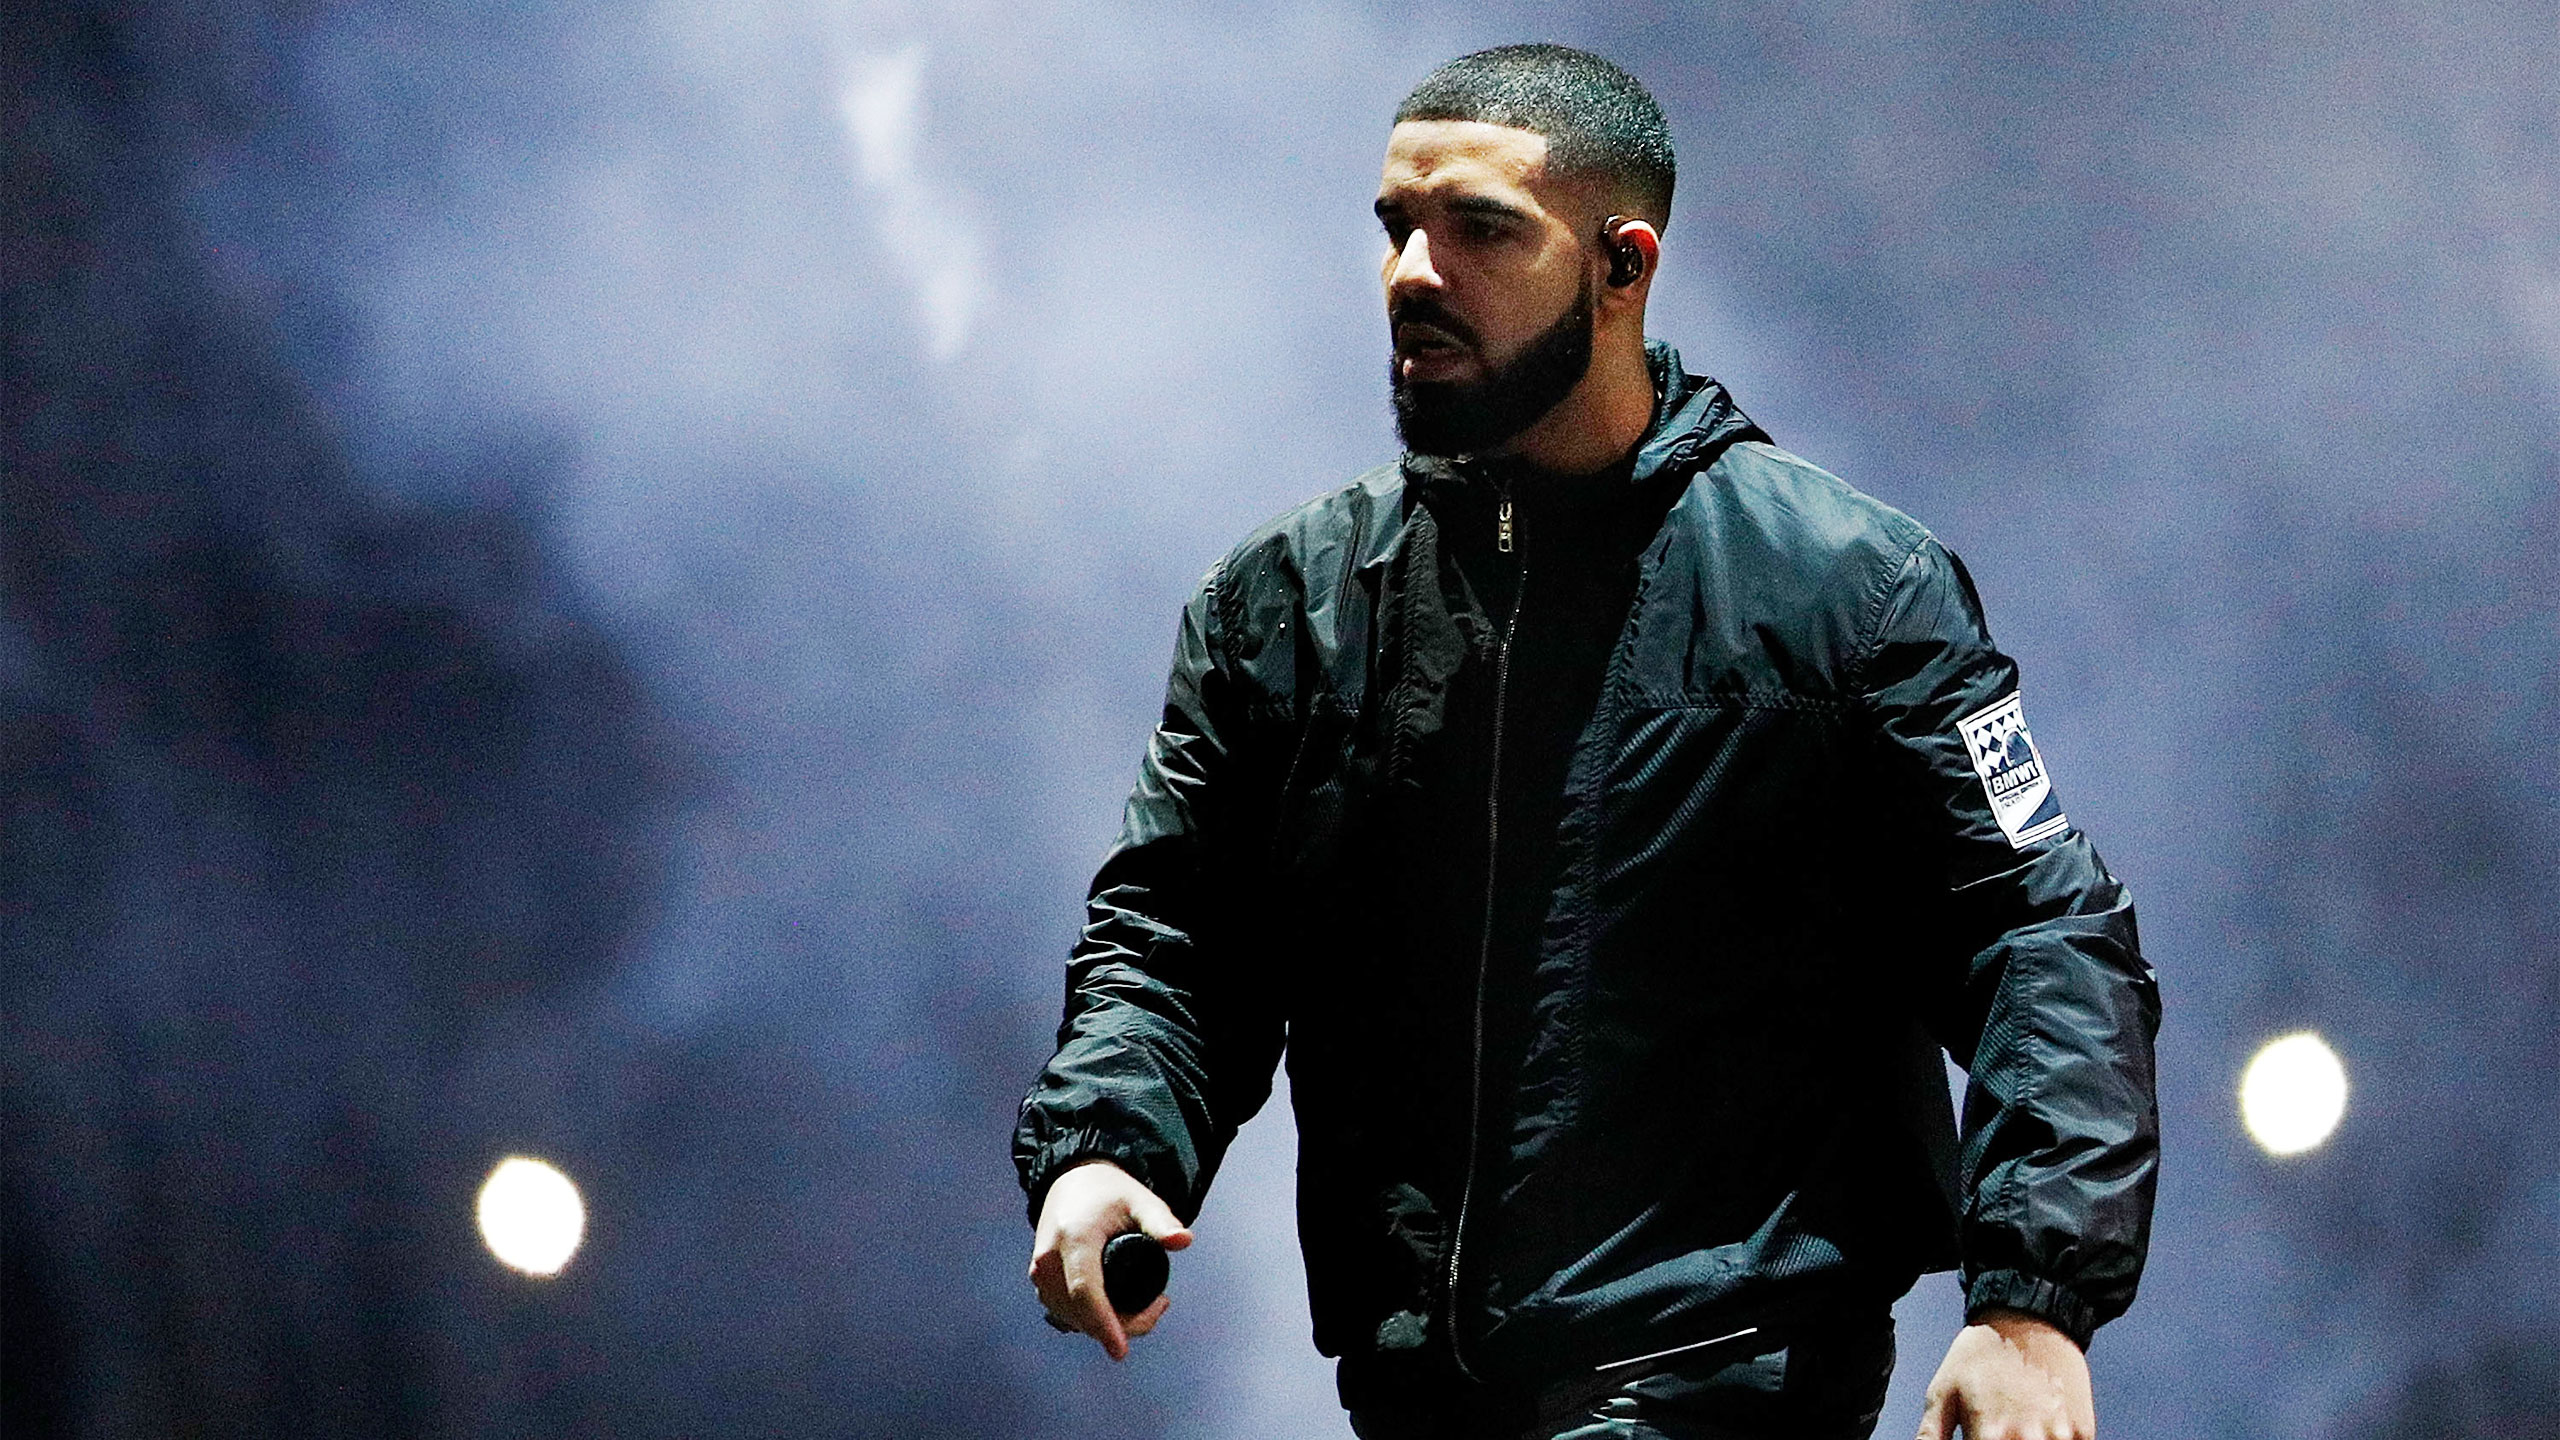 drake Here Are Drake's 'Scorpion' First Week Sales Projections 171115 han drake lede v5q7mj